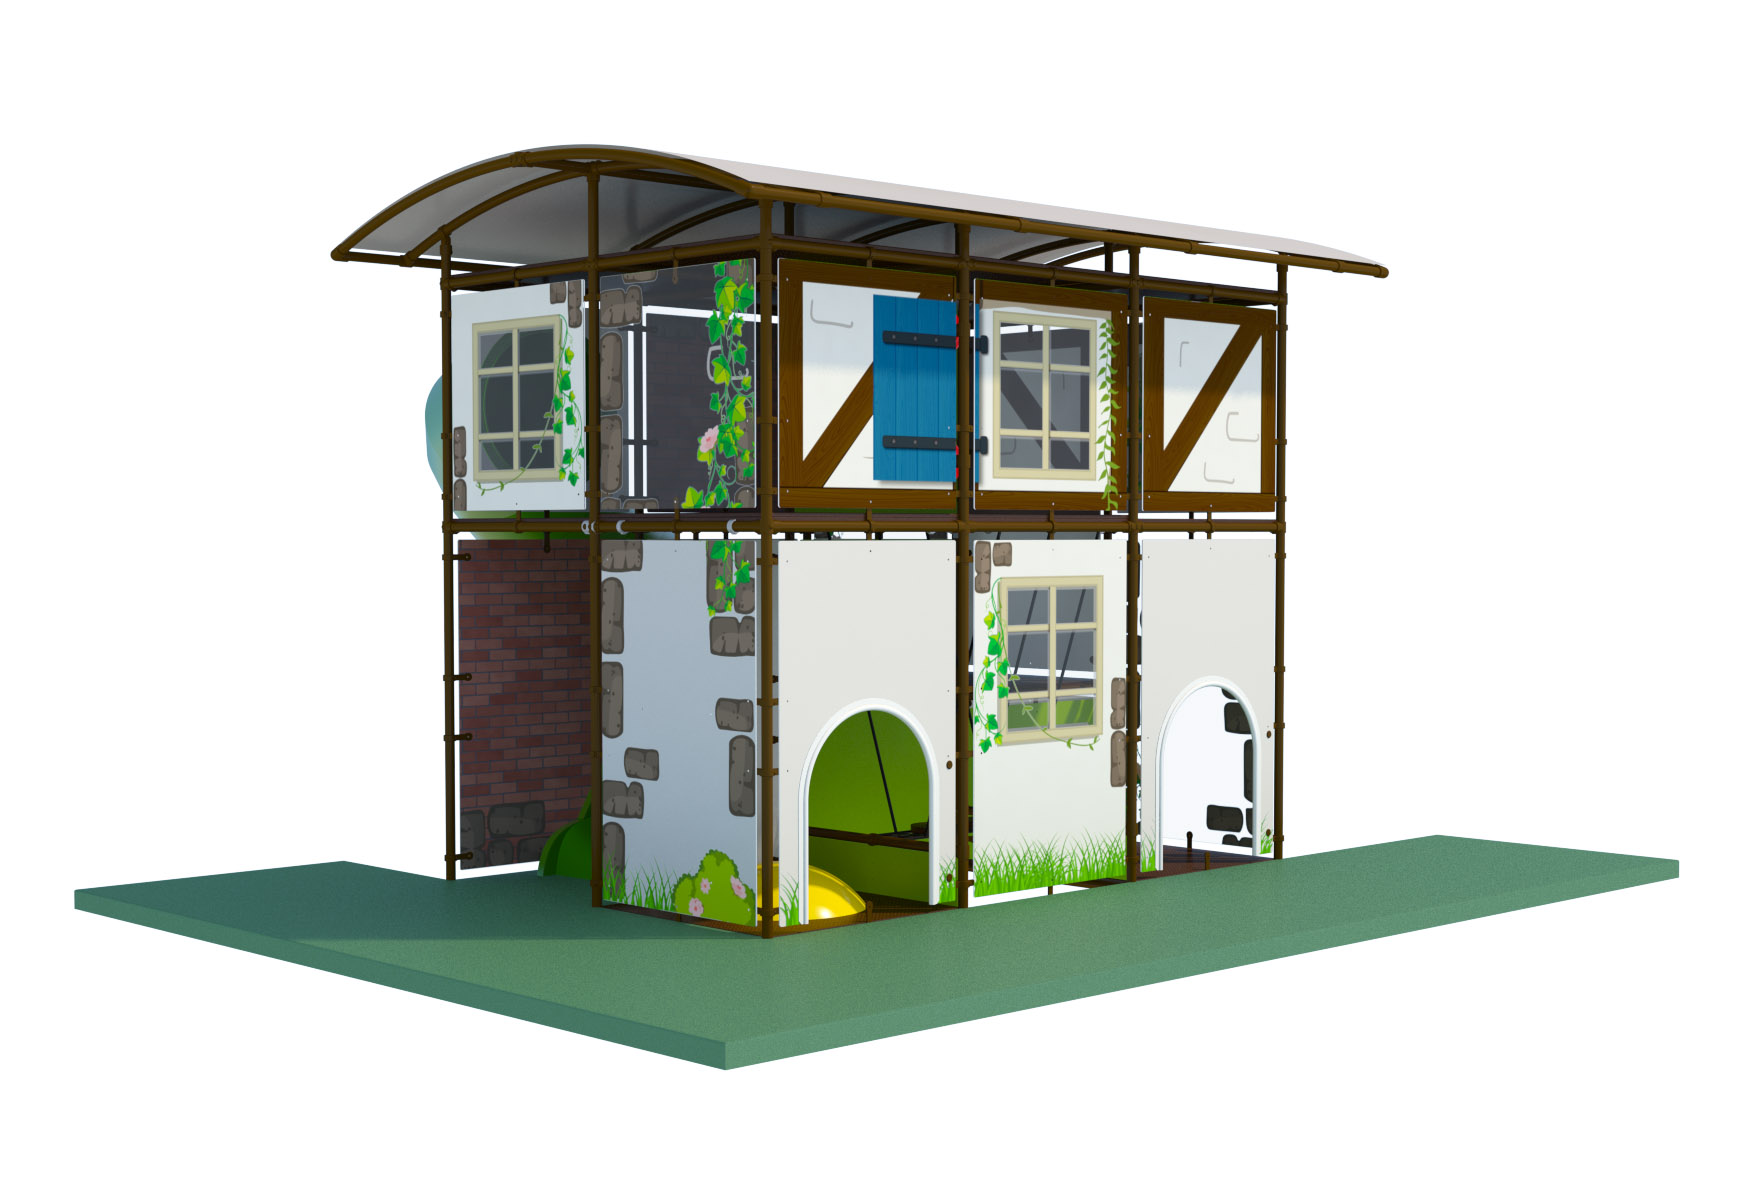 Modular play-structure outdoor